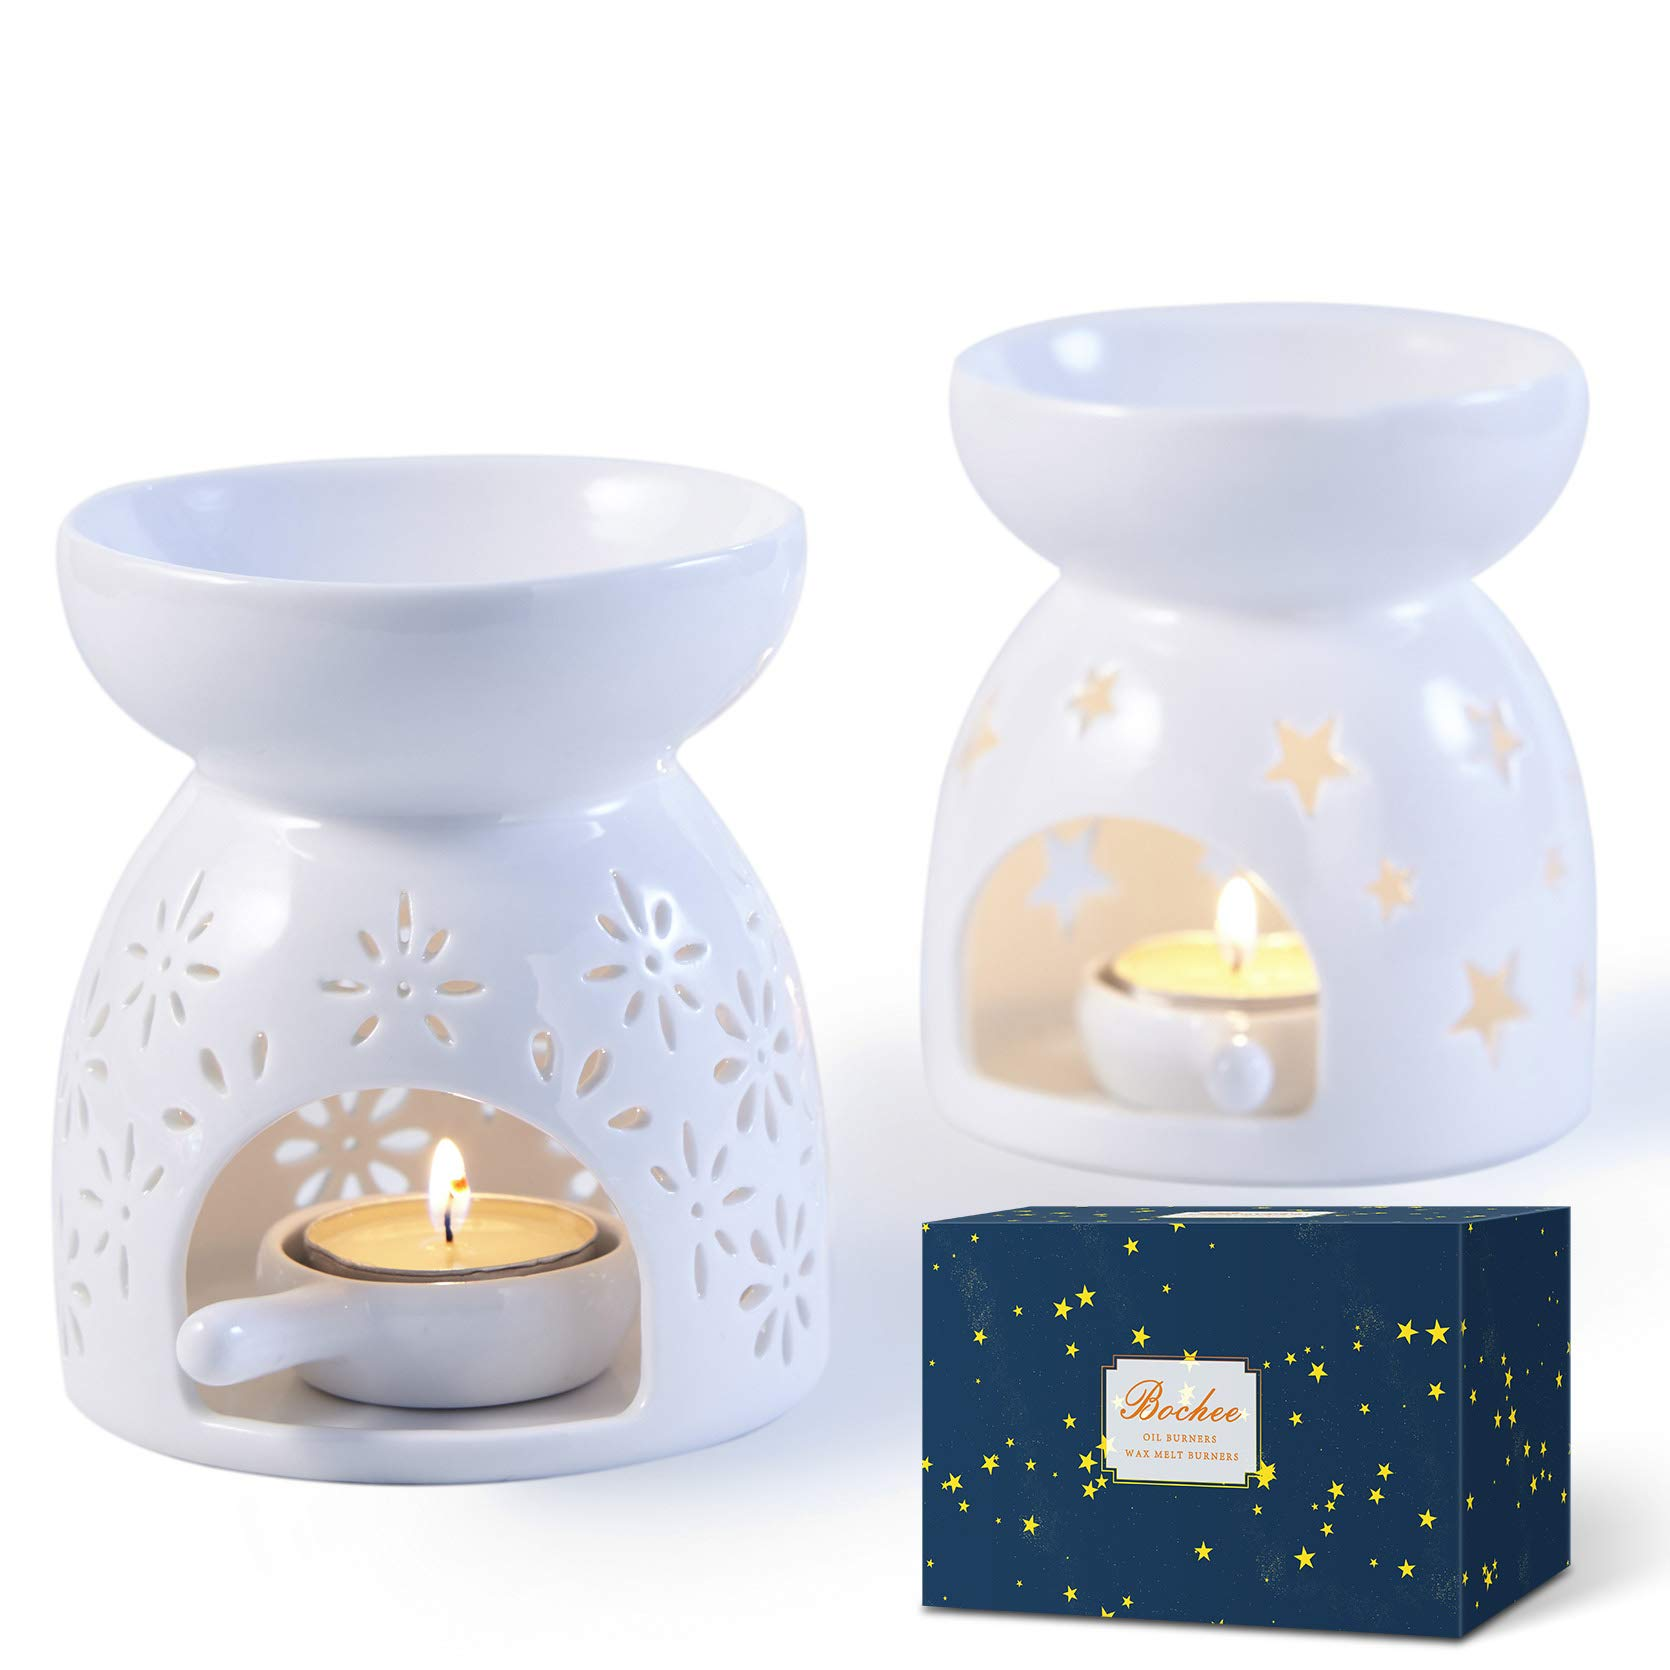 Tealight Wax Melt Burner BTSKY Flower Type Ceramic Essential Oil Burner with Candle Spoon Blue Decoration for Hotel//Bedroom Aromatherapy Diffuser for Yoga Spa Tealight Fragrance Warmer